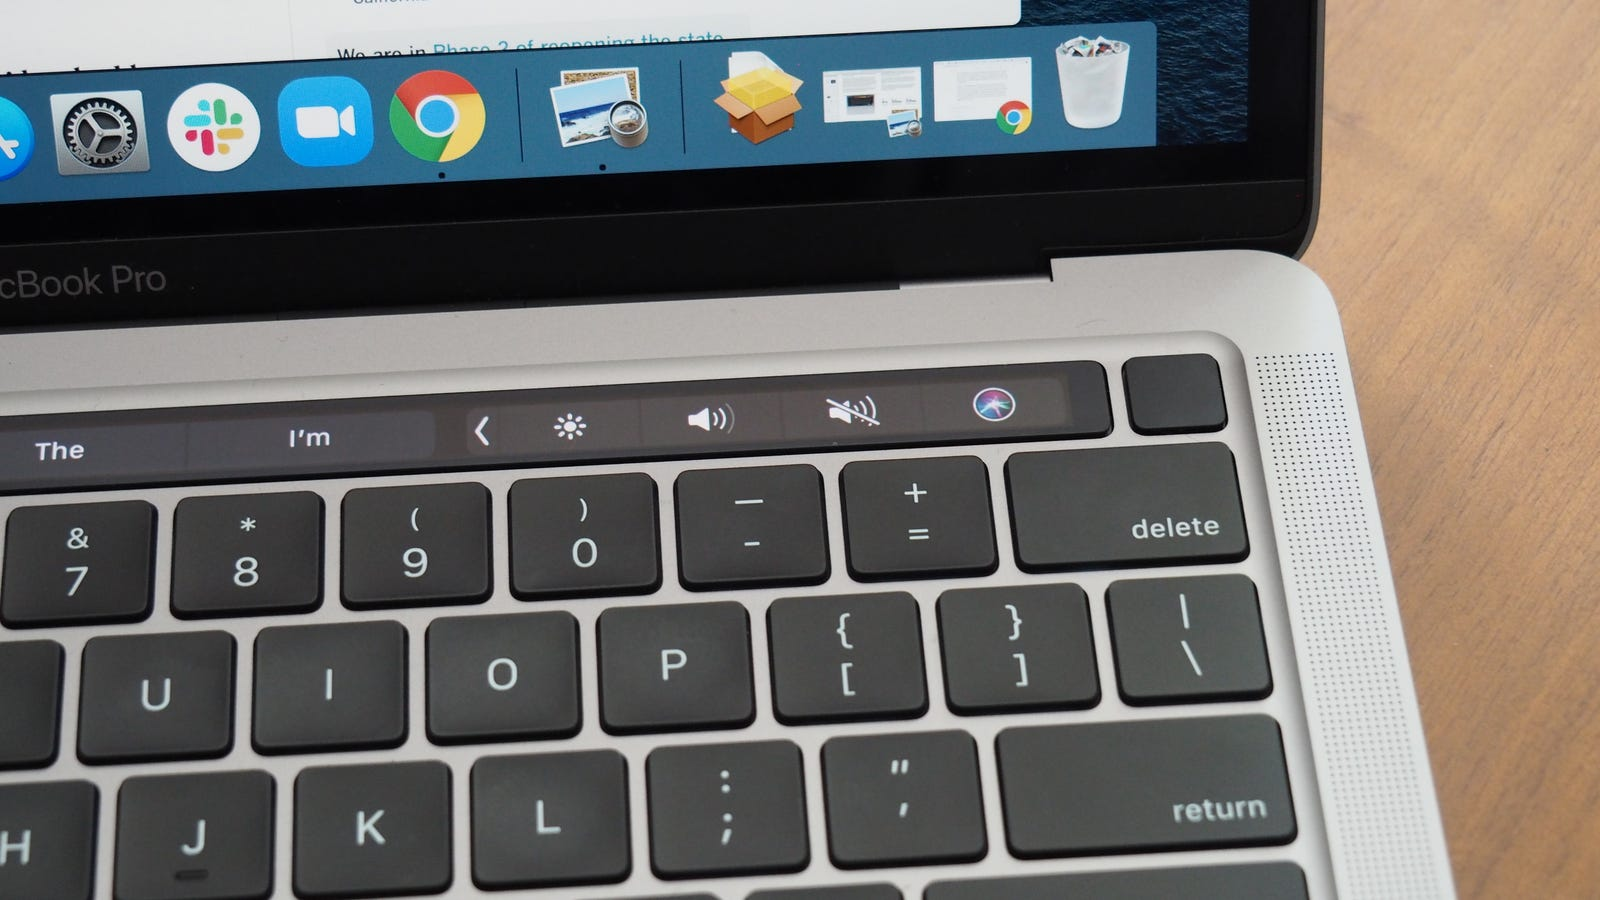 I do love Touch ID, though, which my 3-year-old 13-inch MacBook Pro doesn't have.